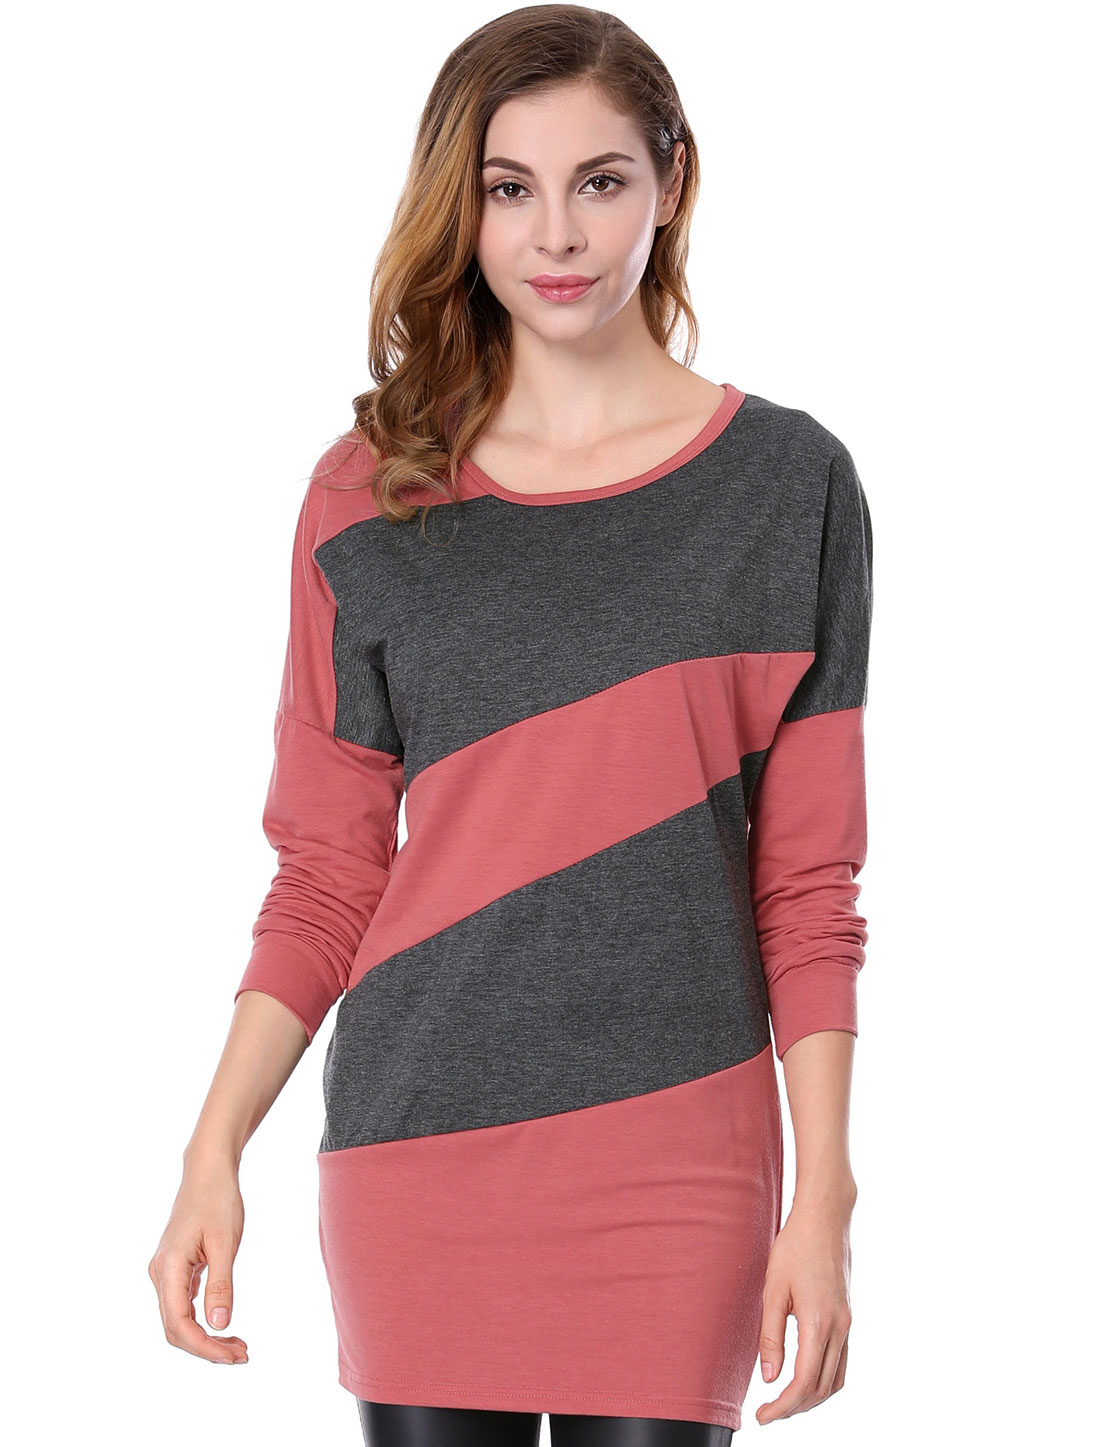 Women Color Block Batwing Sleeves Tunic Top Red L